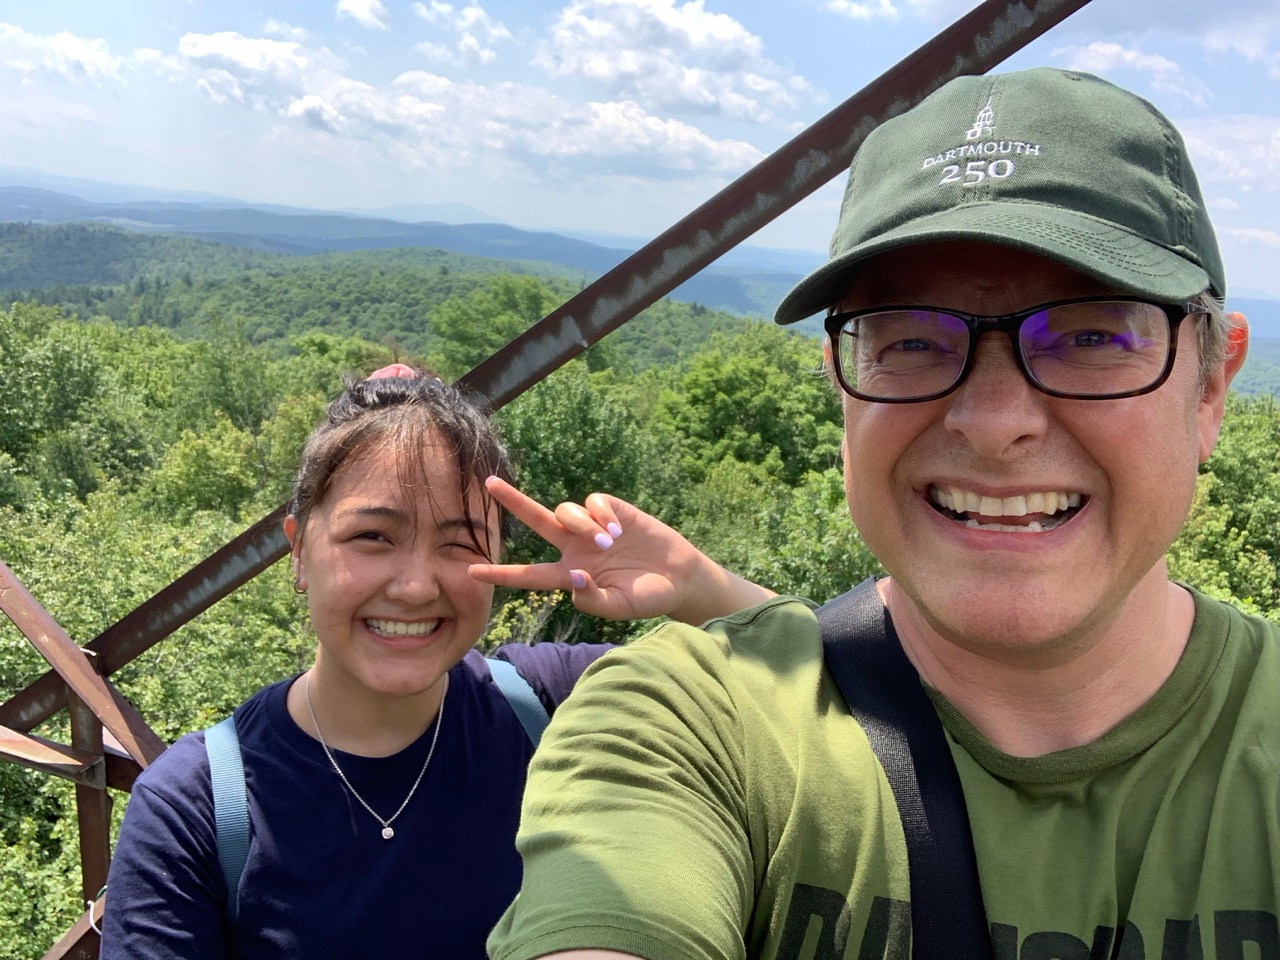 On the fire tower on Gile Mountain